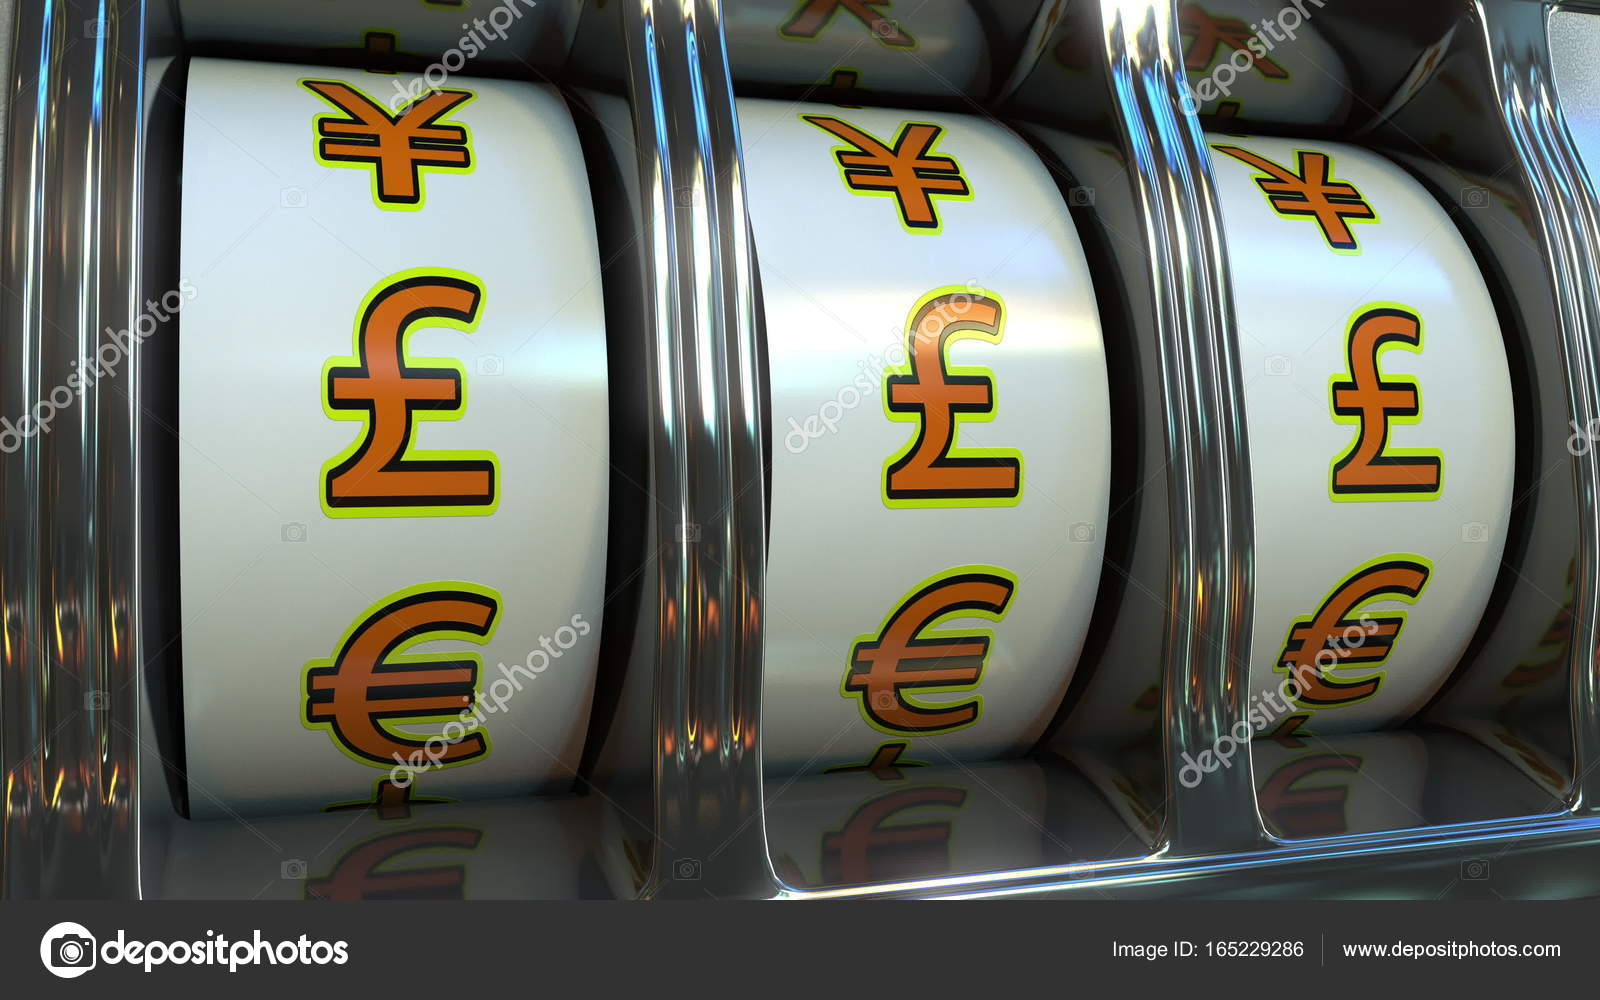 Slot Machine With Pound Sterling Currency Symbols Forex Fortune Or